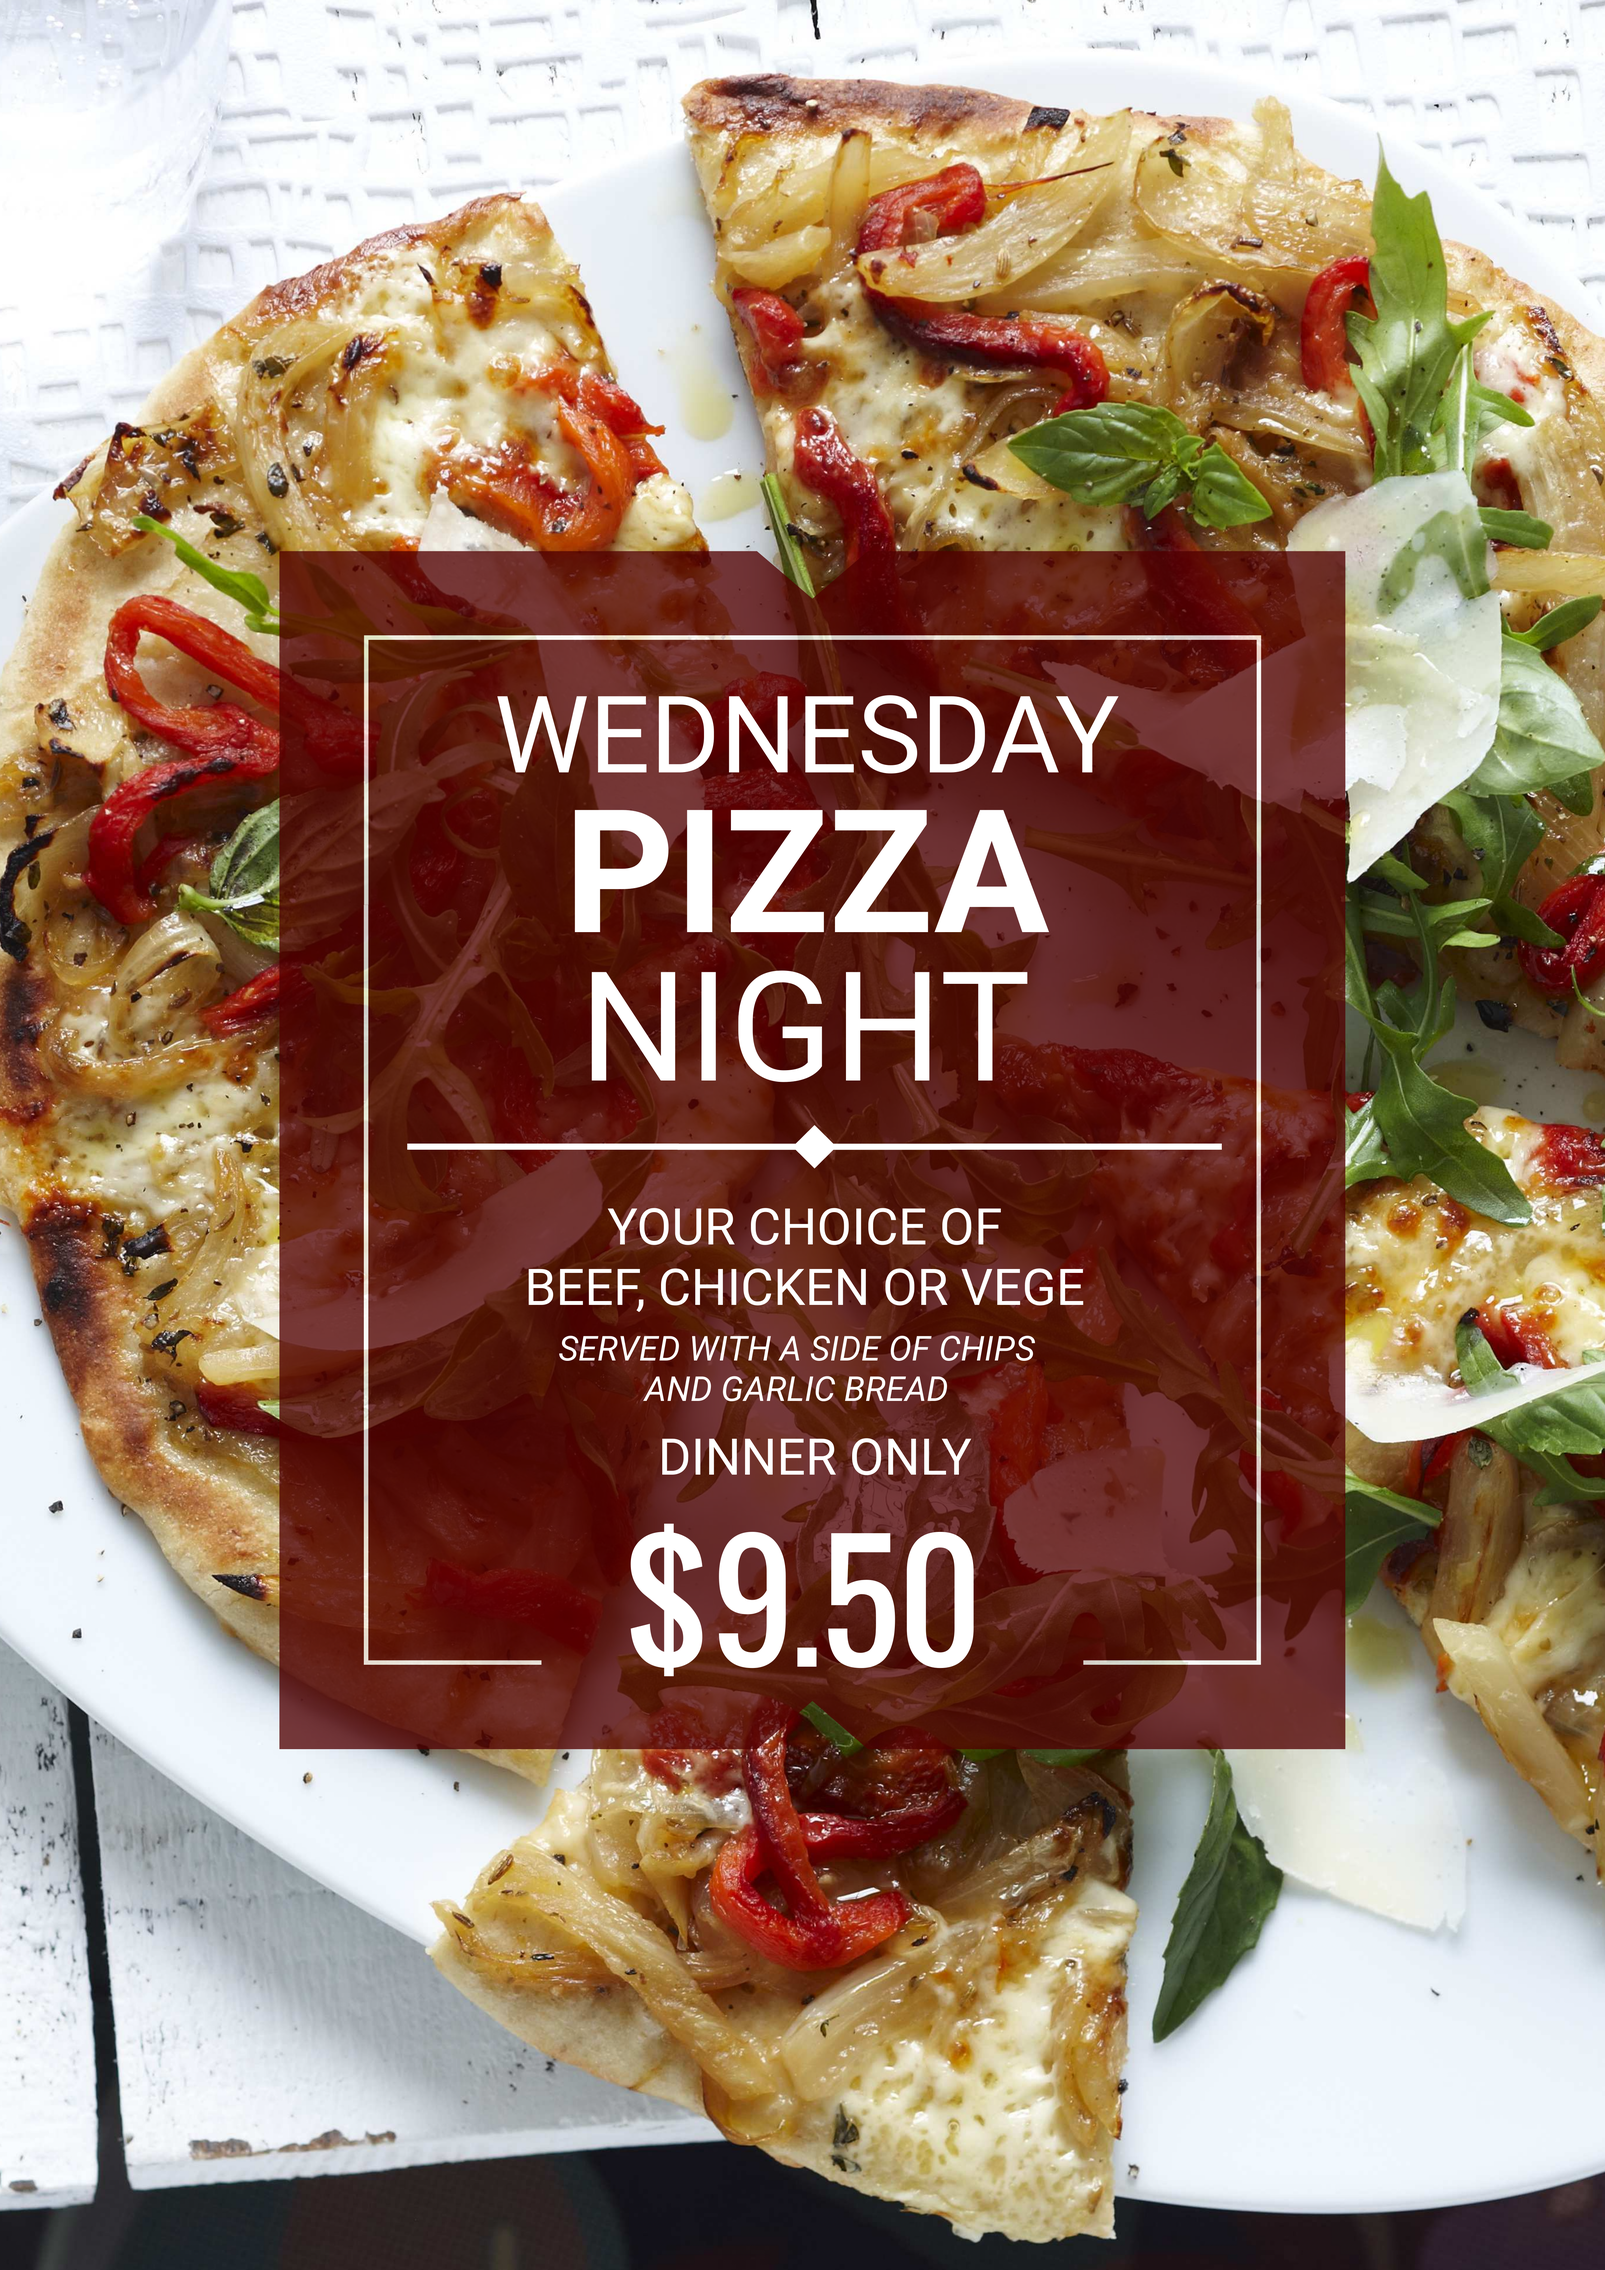 click here to edit this pizza night food promotion design template